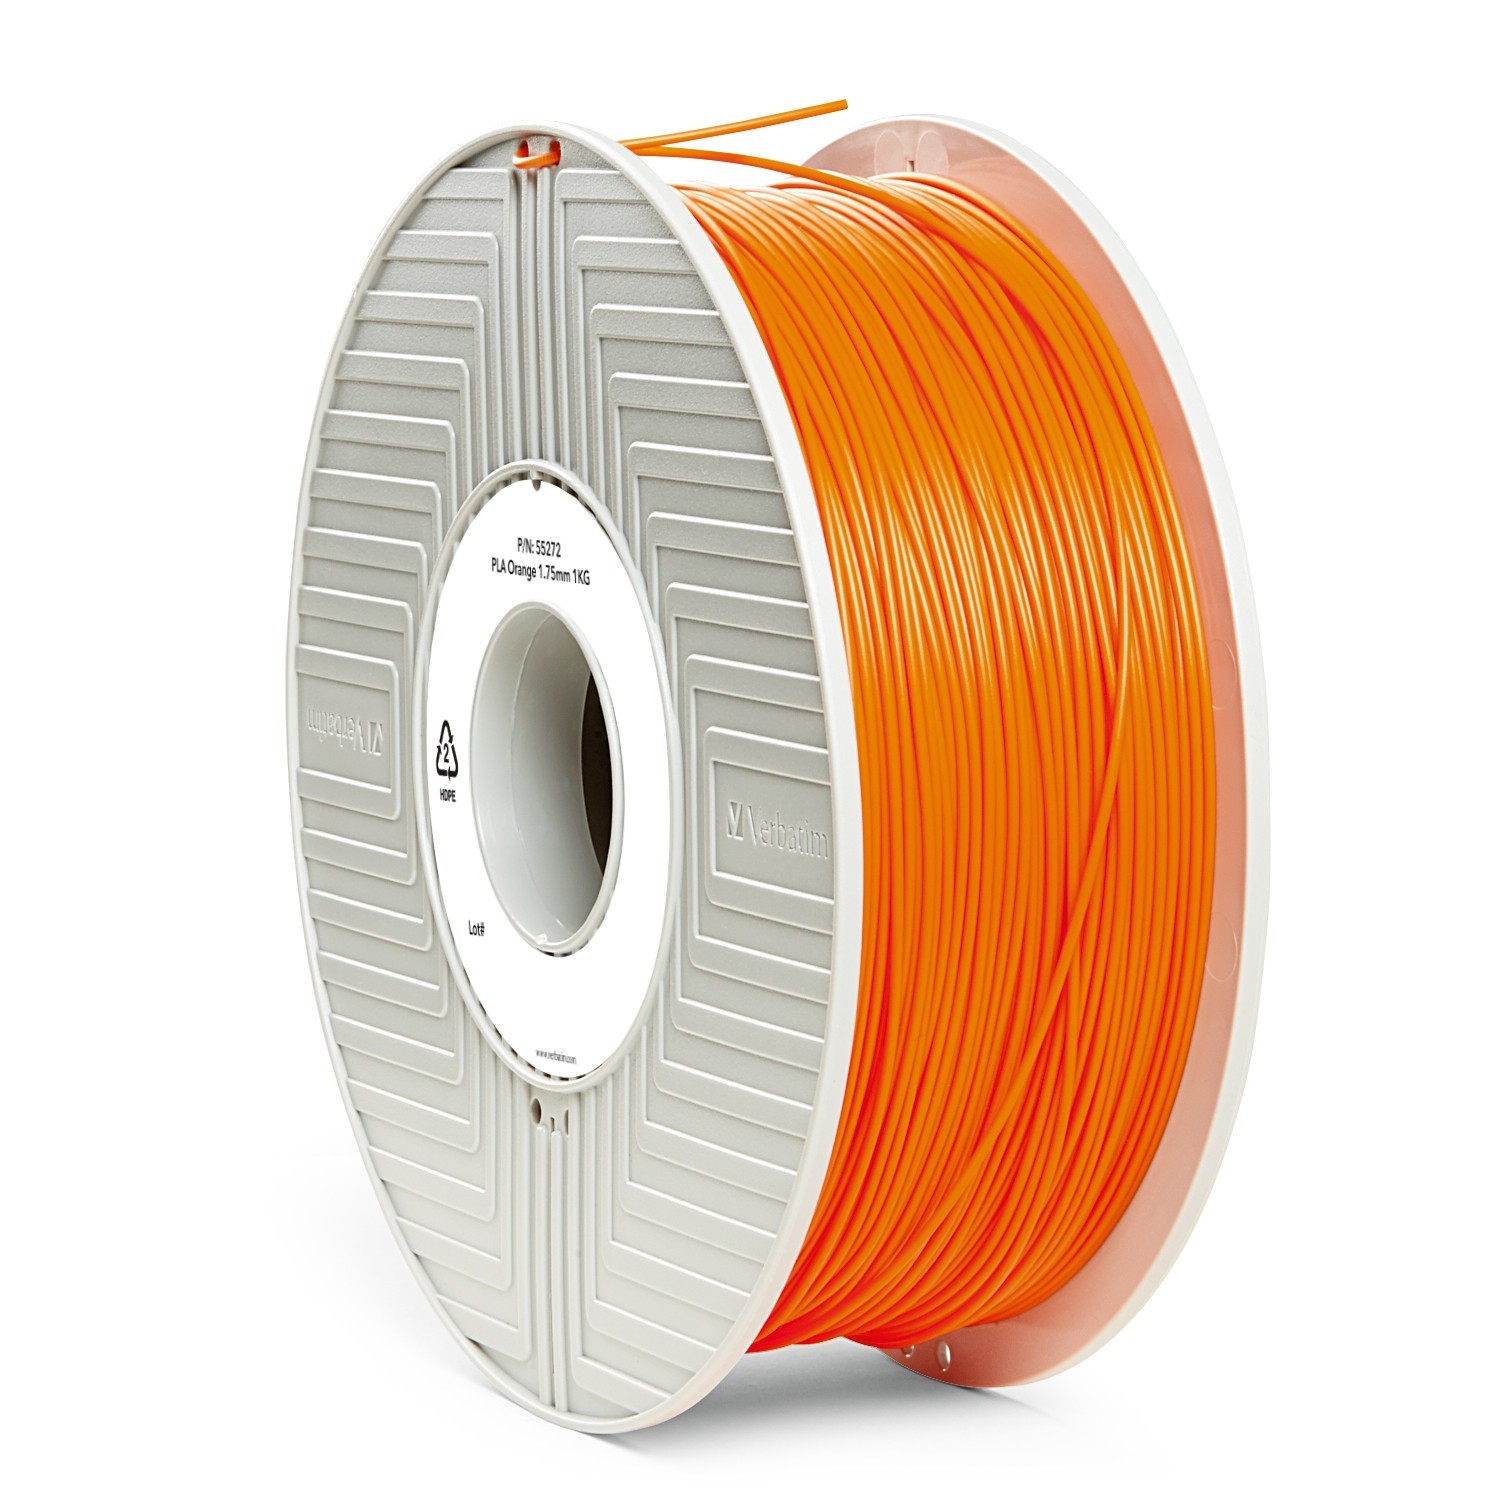 Verbatim 3D Printer PLA 1.75mm Filament - 1kg (Orange) image